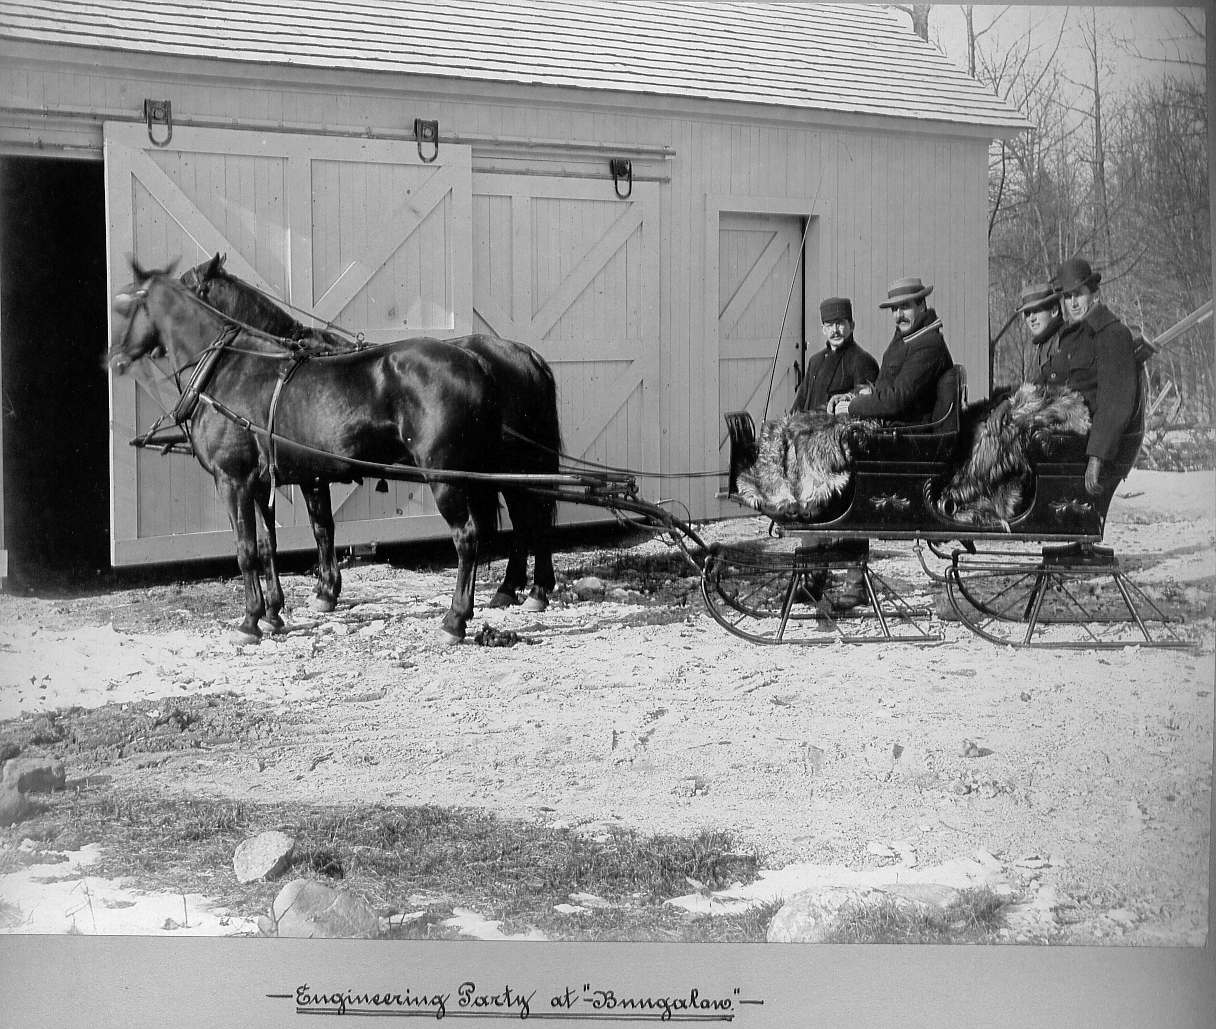 Men in horse drawn sleigh at barn